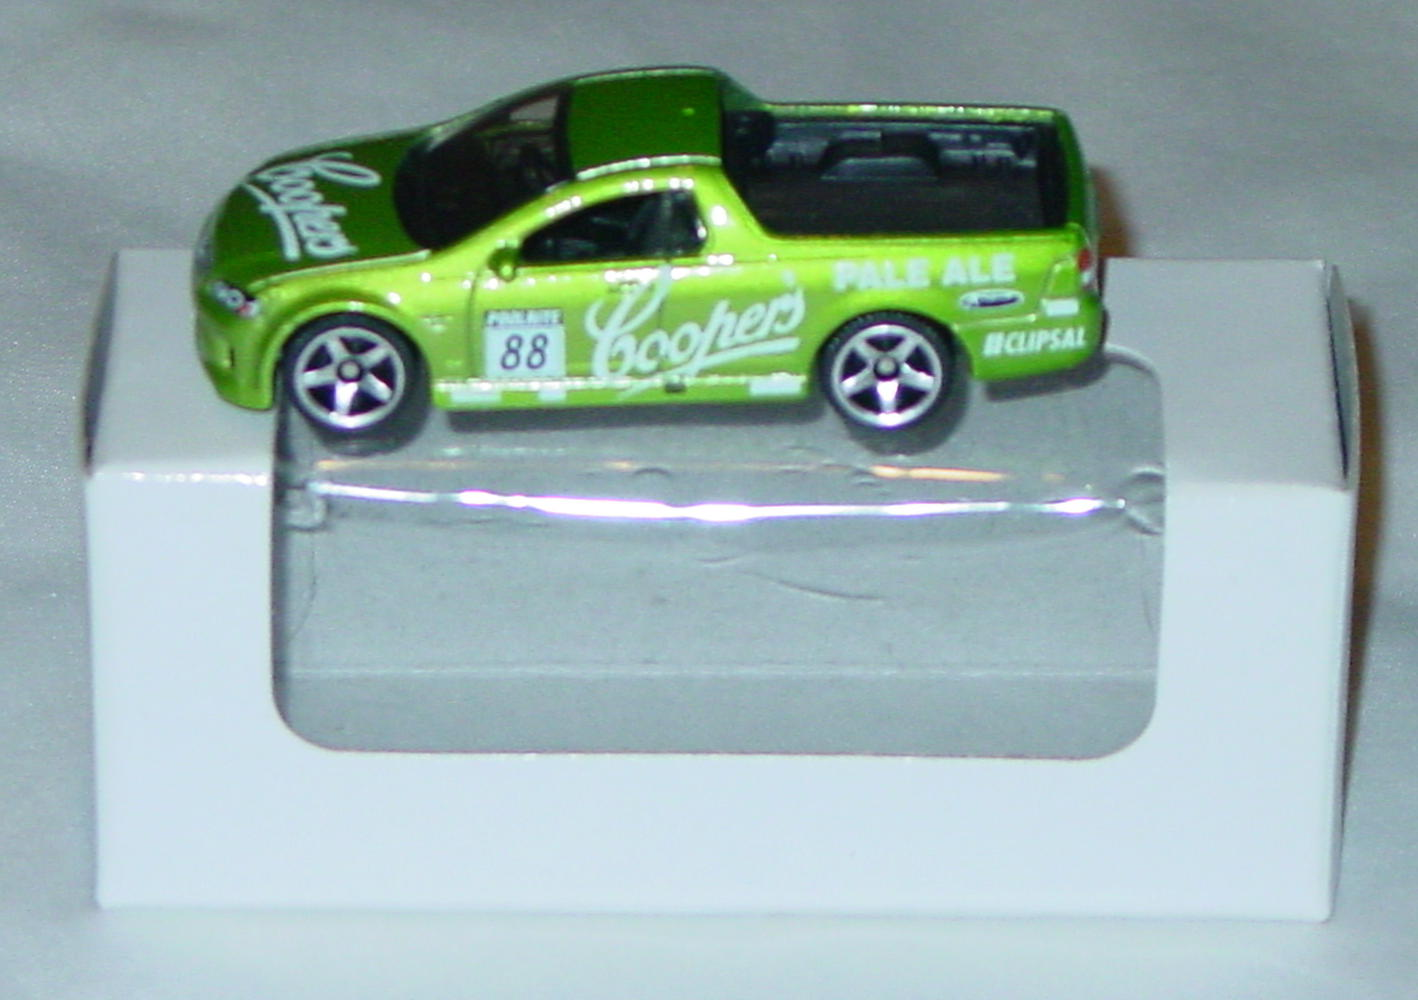 ASAP-CCI 02 P - MODELoftheMONTH 10/11 Holden Ute Coopers Pale Ale